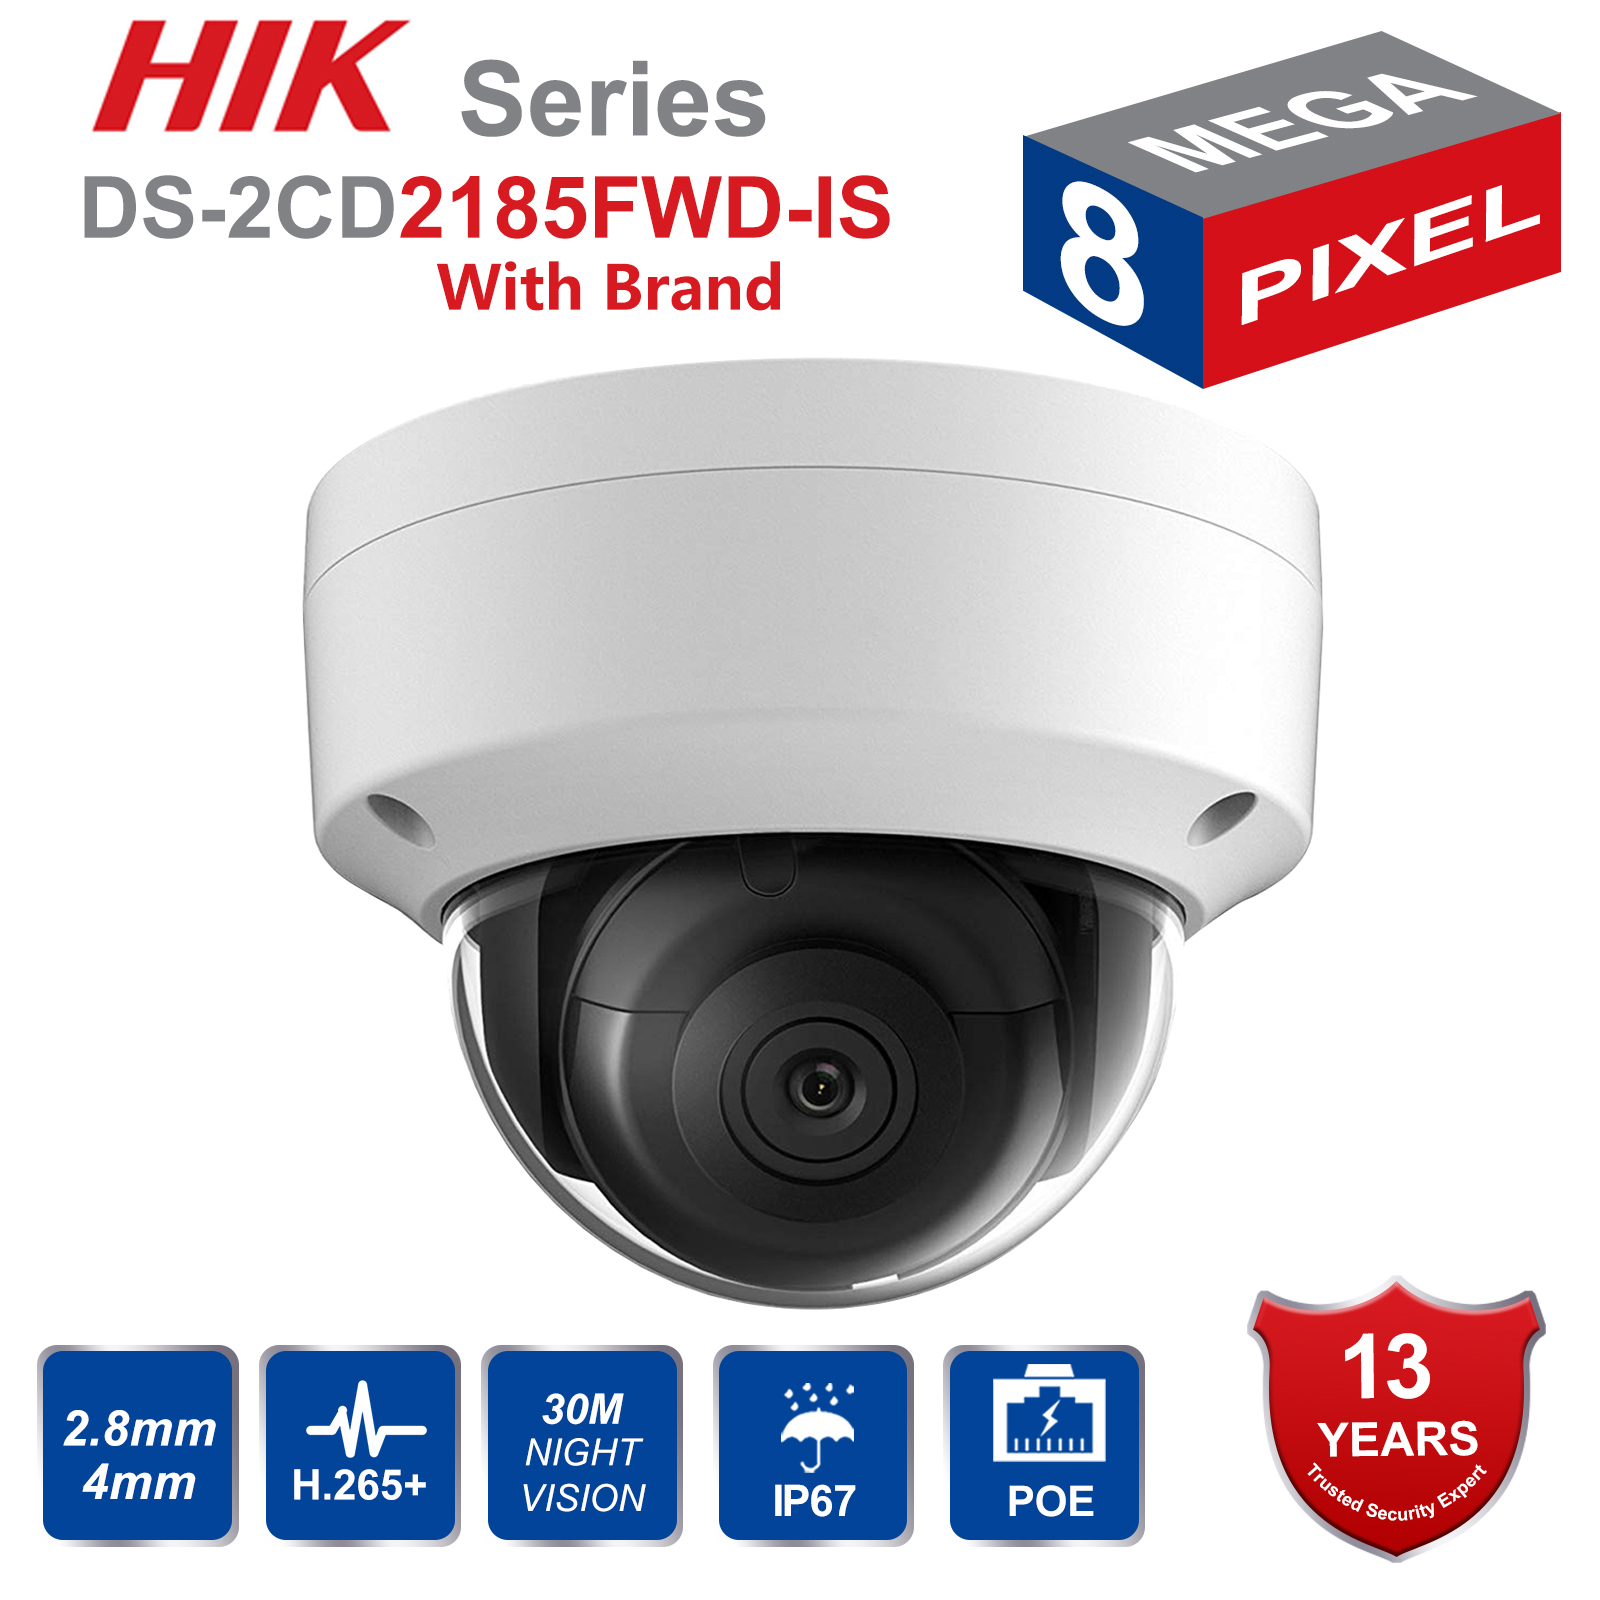 Hik DS-2CD2185FWD-IS 8MP Outdoor Dome ip Camera H.265 Updatable CCTV Camera With Audio and Alarm Interface security kameraHik DS-2CD2185FWD-IS 8MP Outdoor Dome ip Camera H.265 Updatable CCTV Camera With Audio and Alarm Interface security kamera